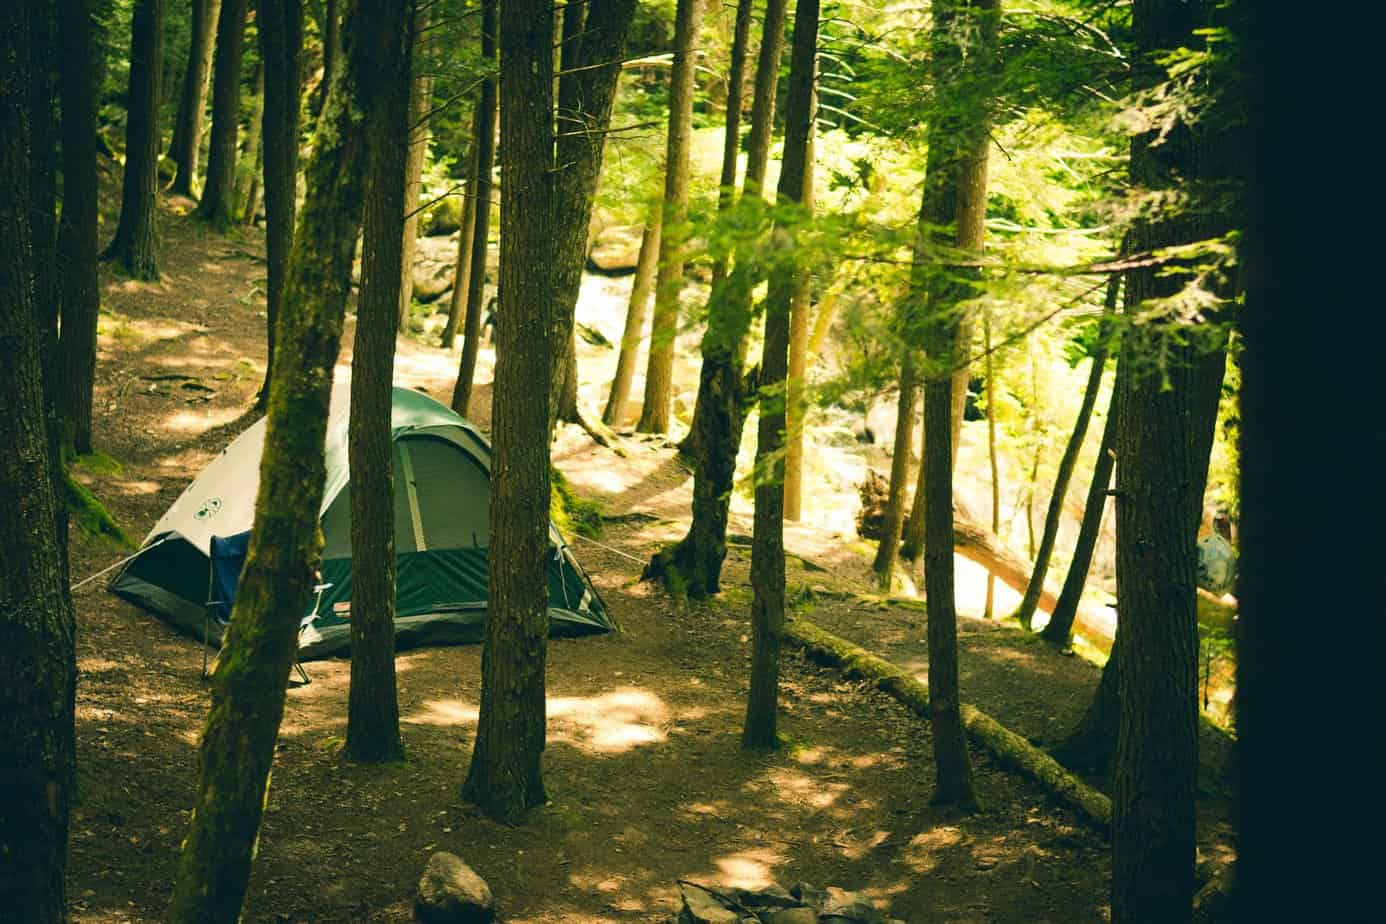 tent in the forest